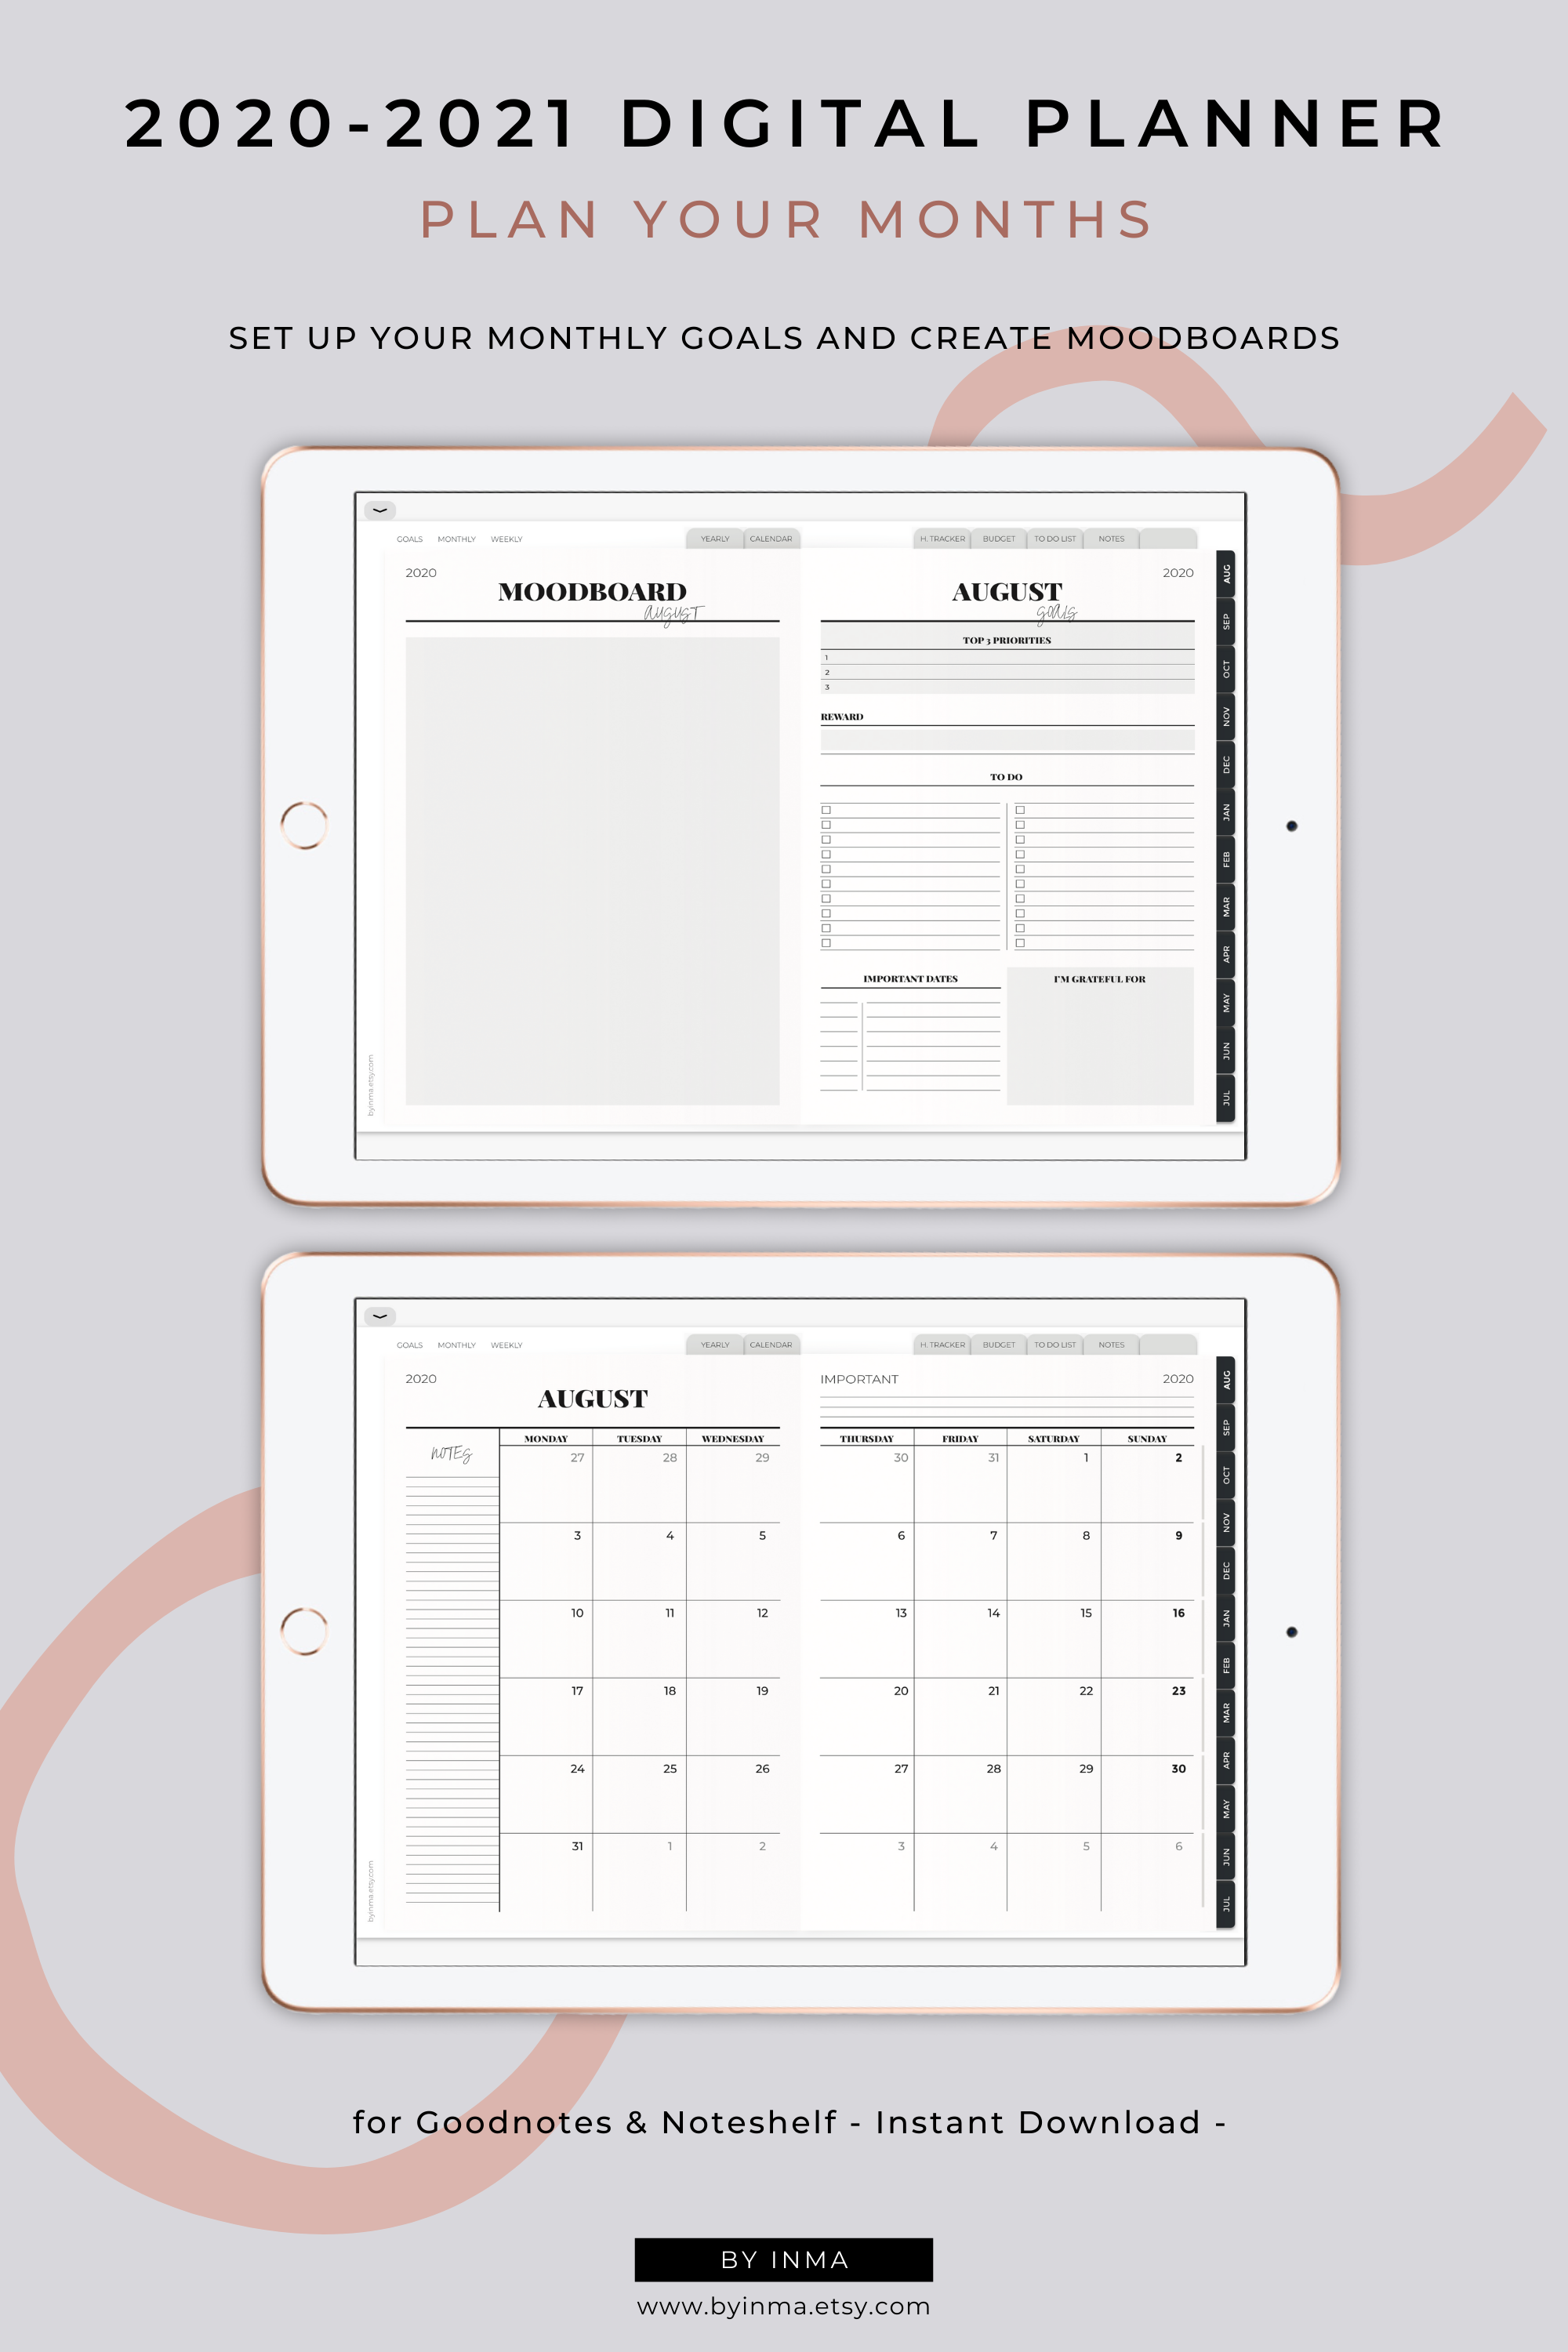 Digital Planner 2020-2021, Goodnotes academic planner, Minimalist weekly planner iPad with inspirational quotes, Noteshelf planner